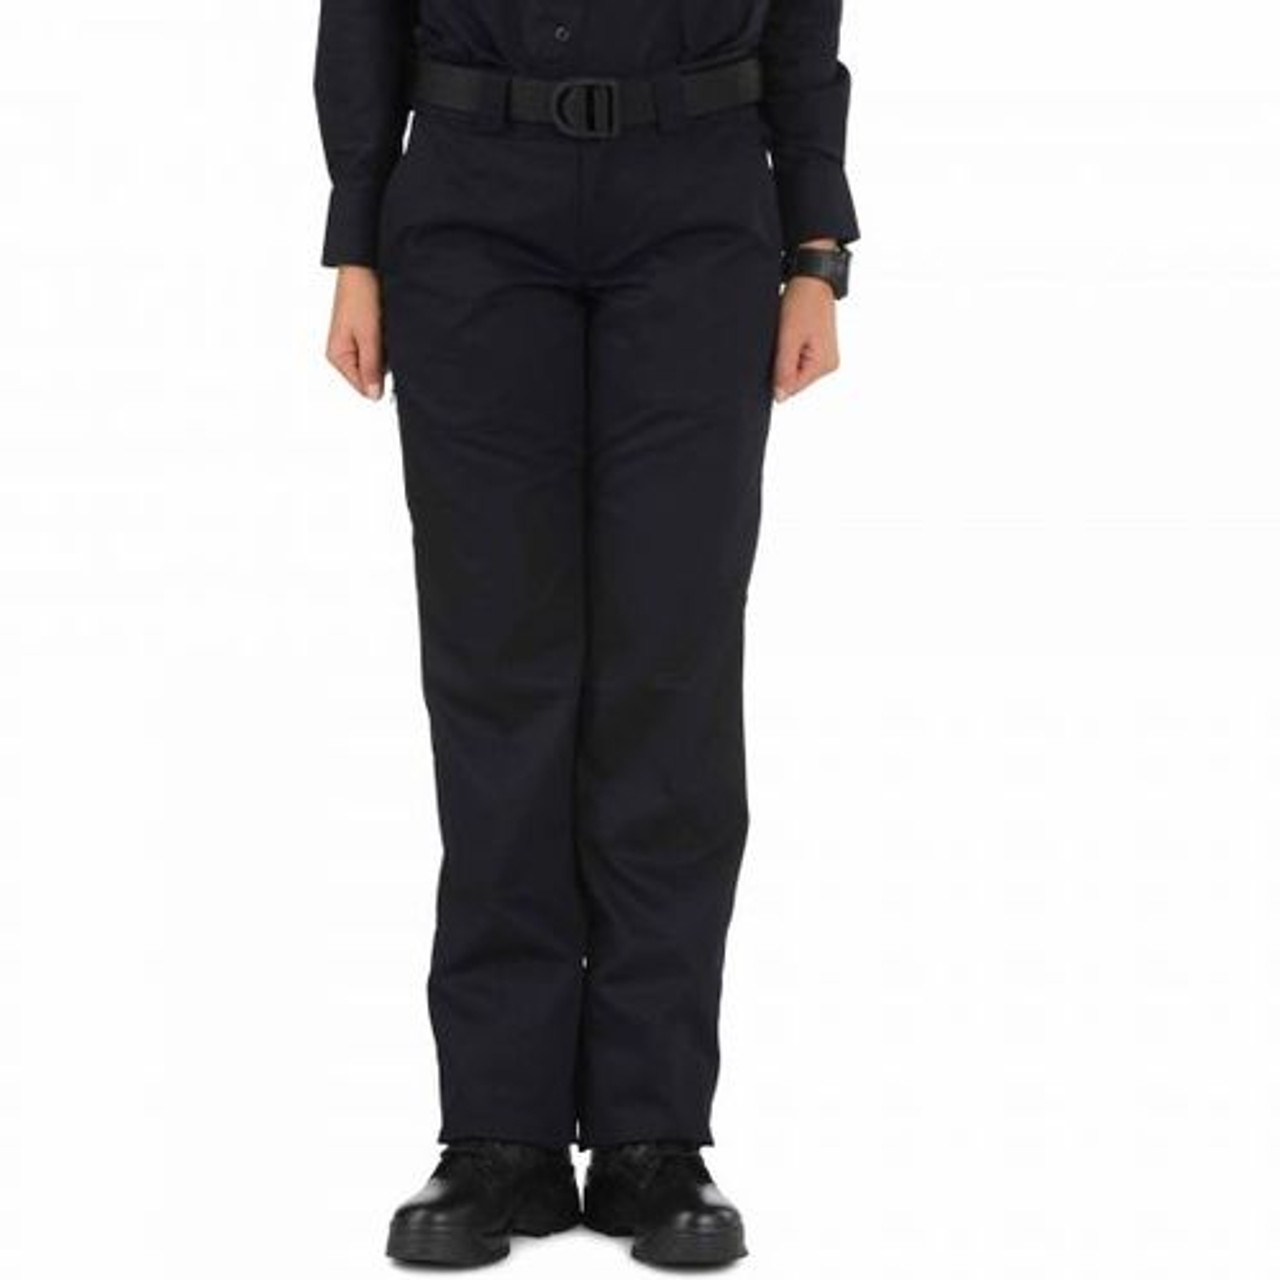 5.11 Tactical 64308W Women's Twill PDU Class-A Uniform Pants, Classic/Straight Fit, Polyester/Cotton, Navy